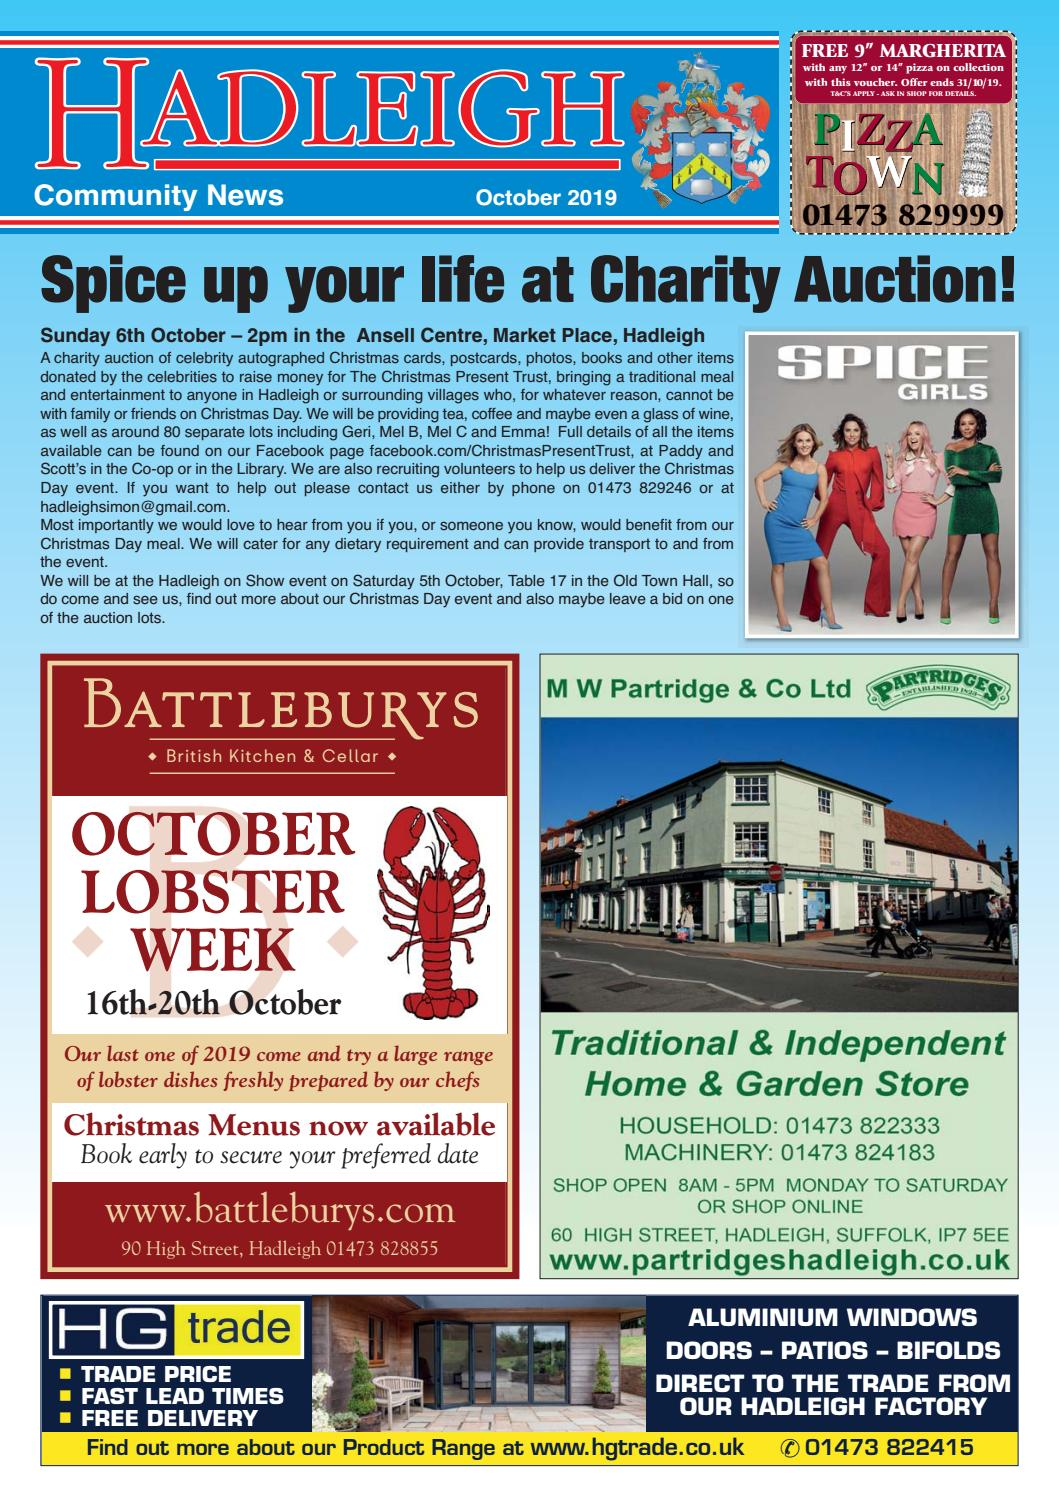 Hadleigh munity News October 2019 by Keith Avis Printers